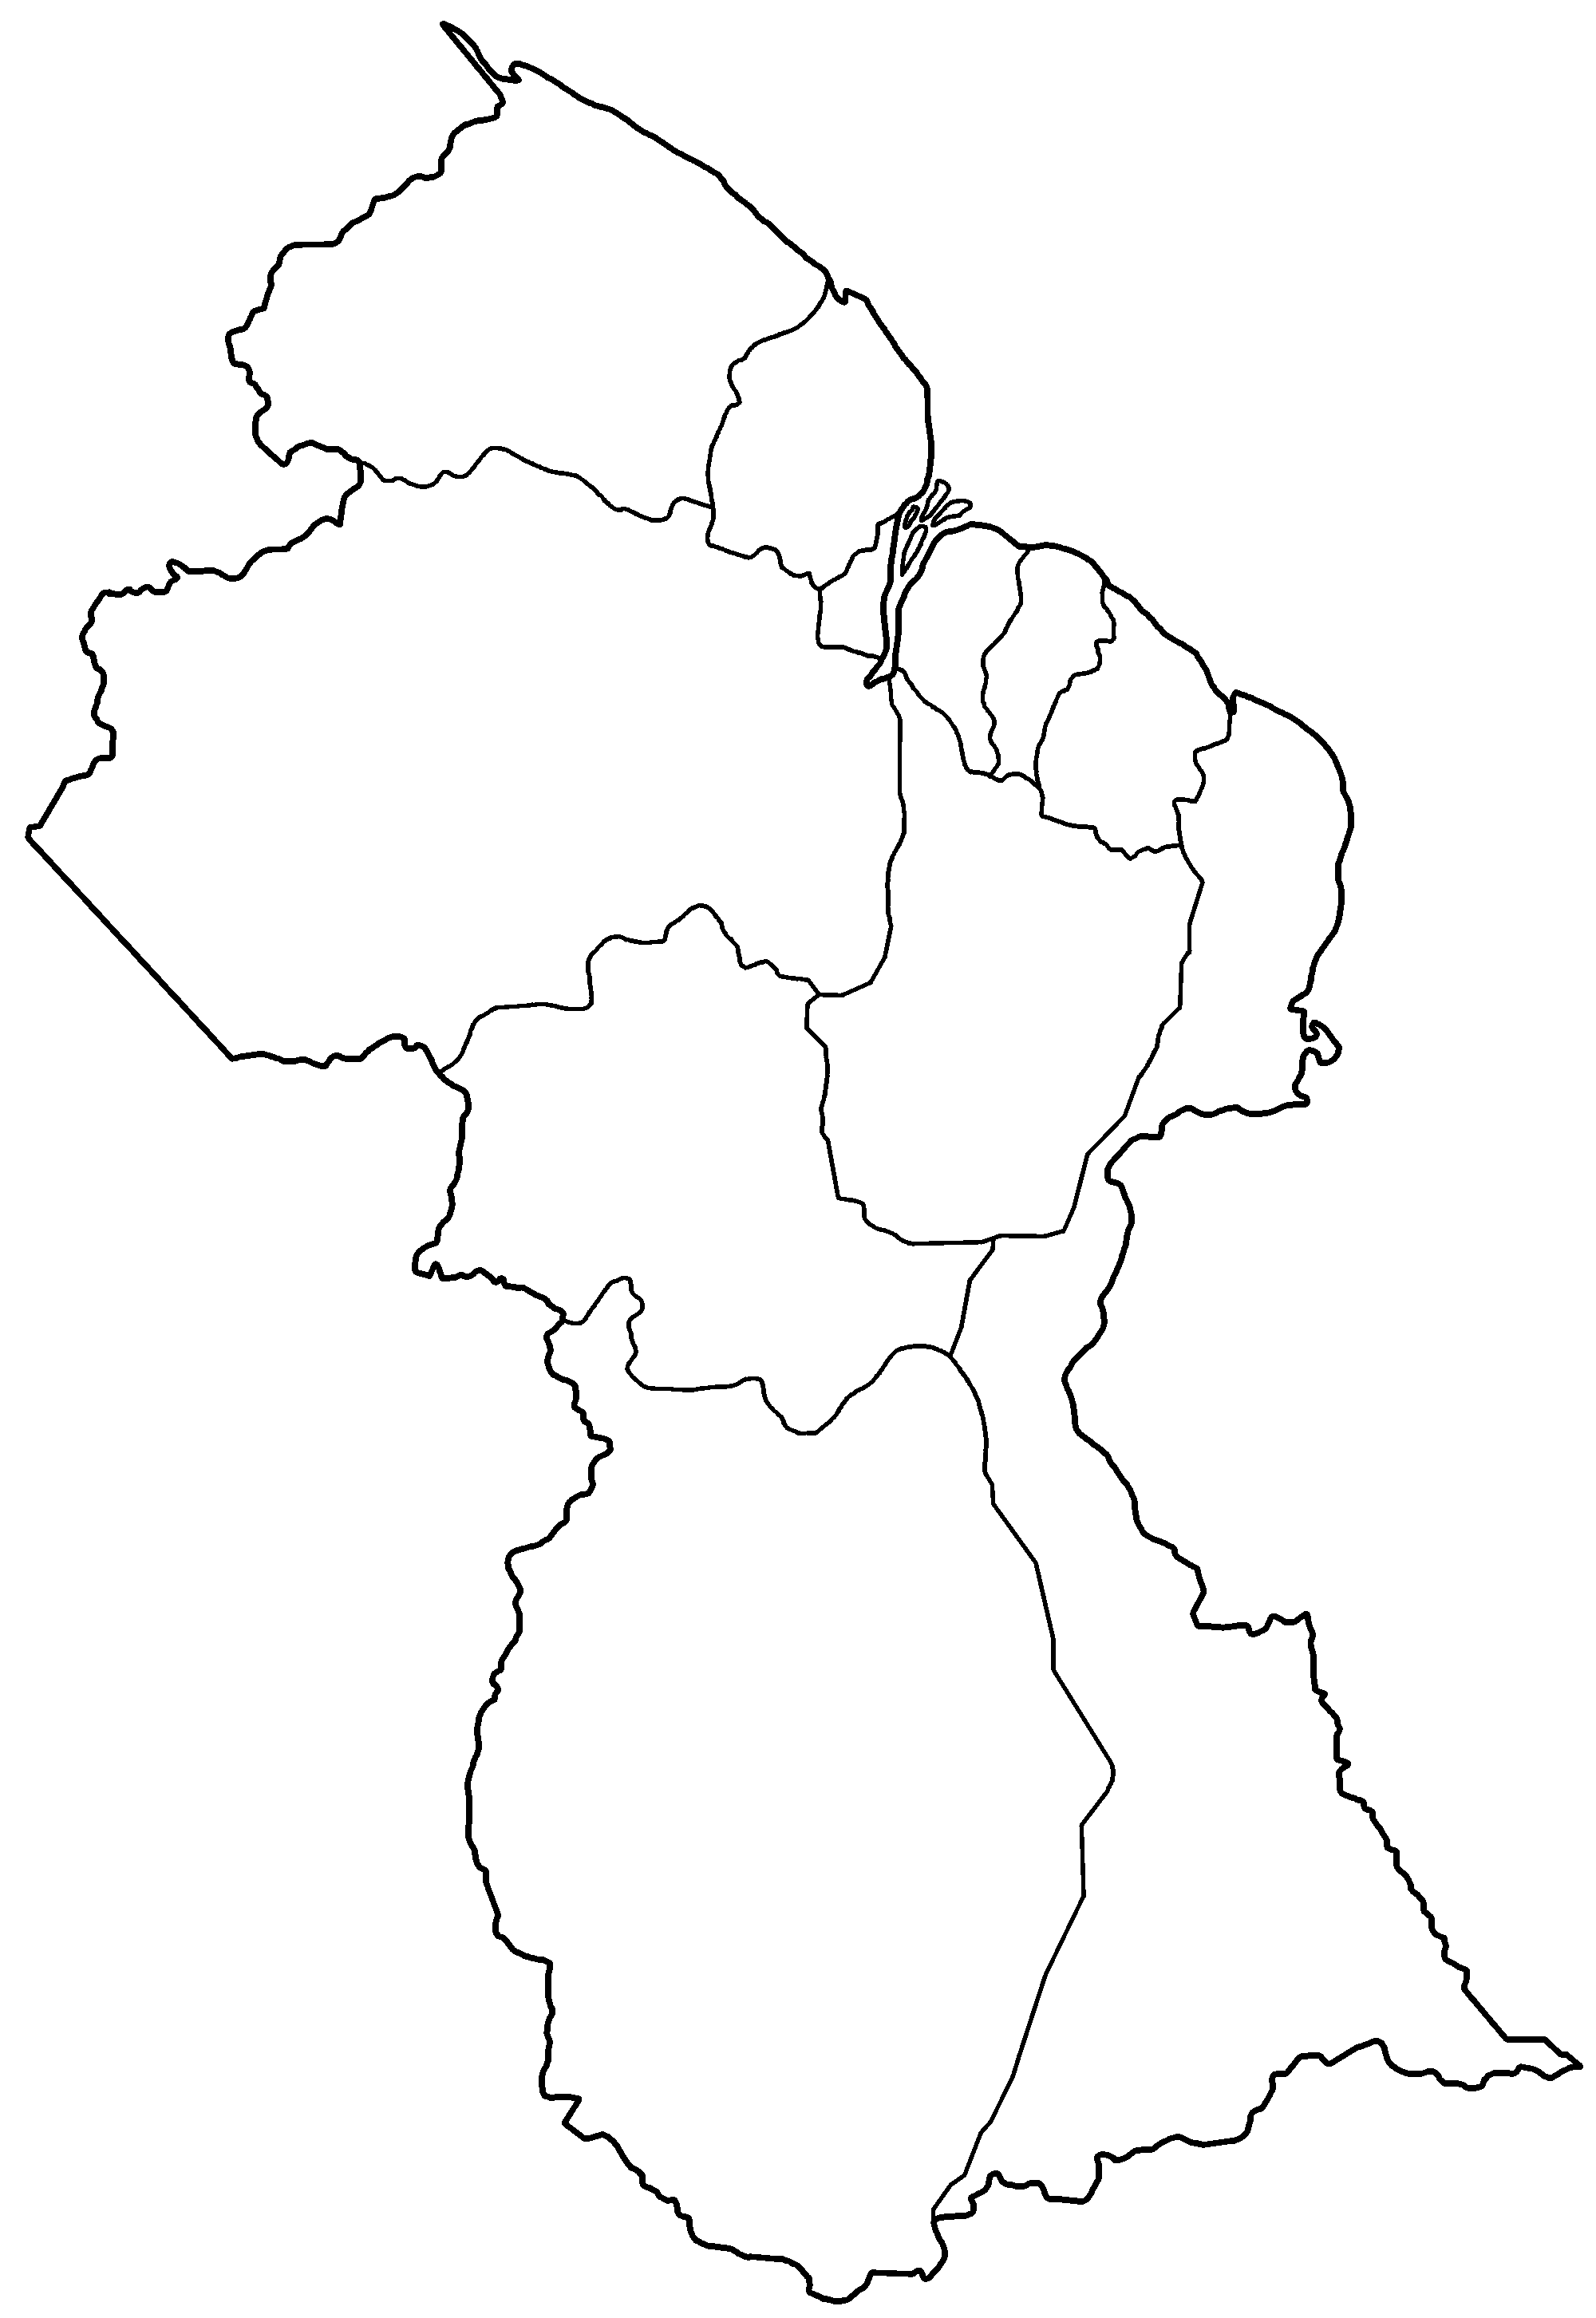 FileGuyana regions blankpng Wikimedia Commons